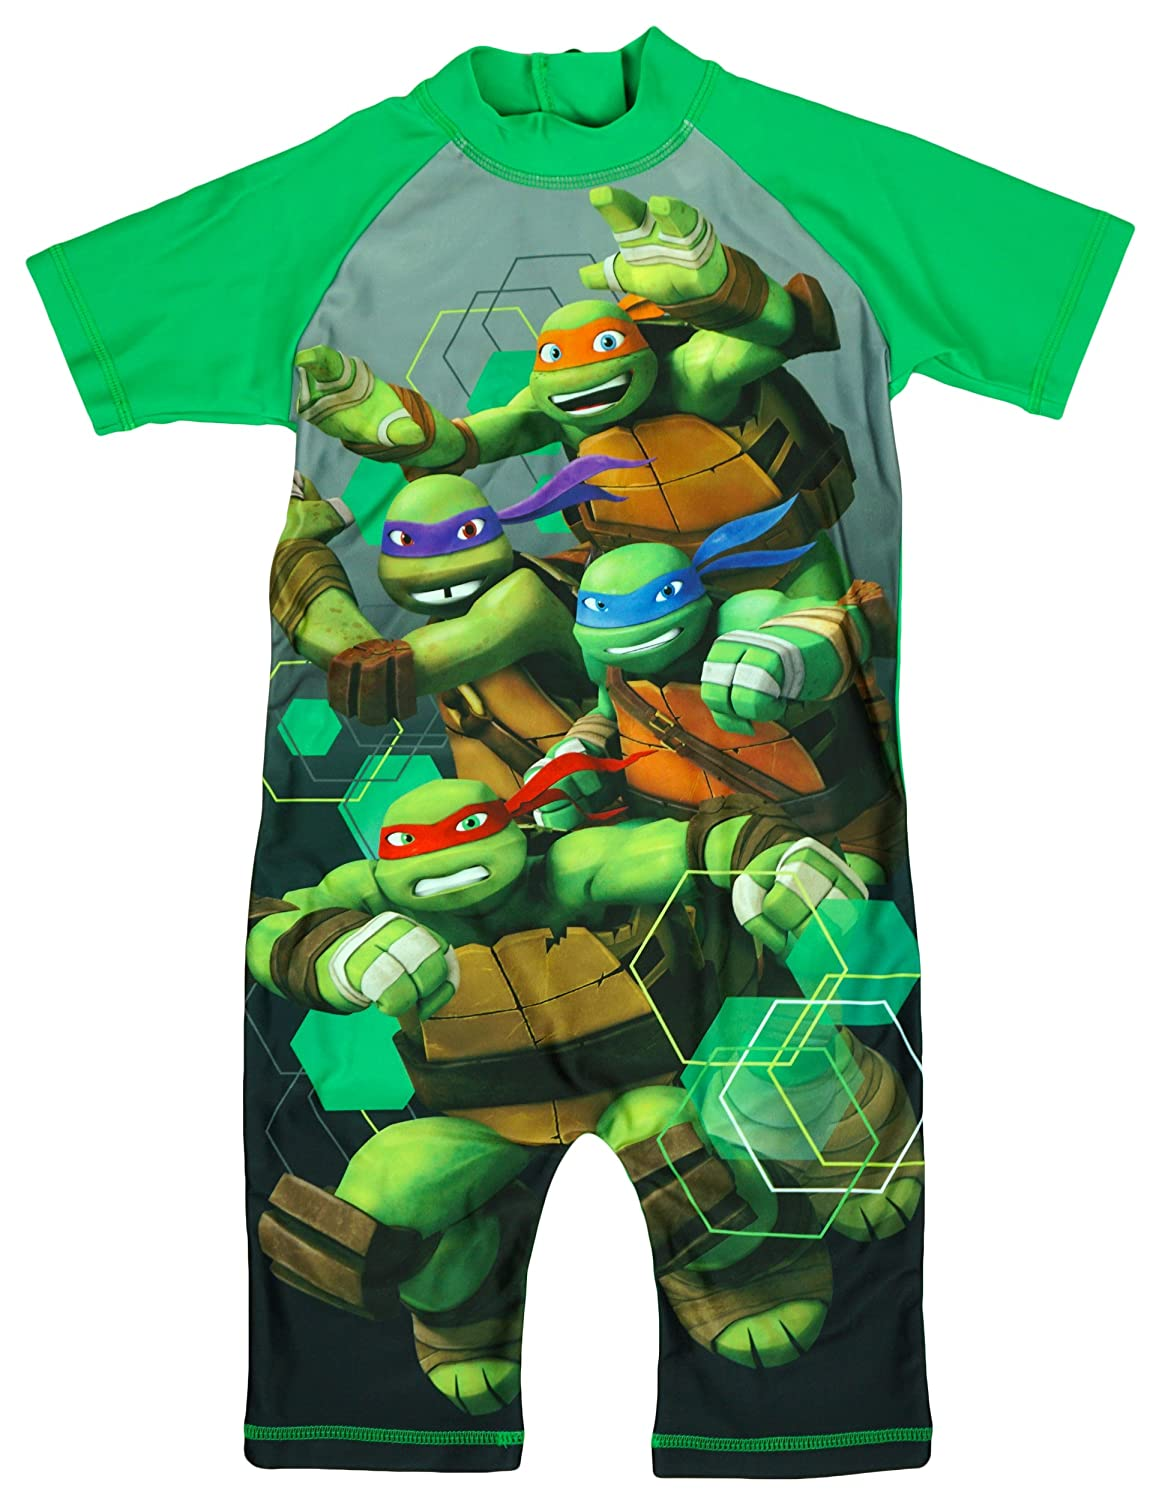 Boys Teenage Mutant Ninja Turtles All in One TMNT Sunsafe Swimsuit sizes from 1.5 to 5 Years